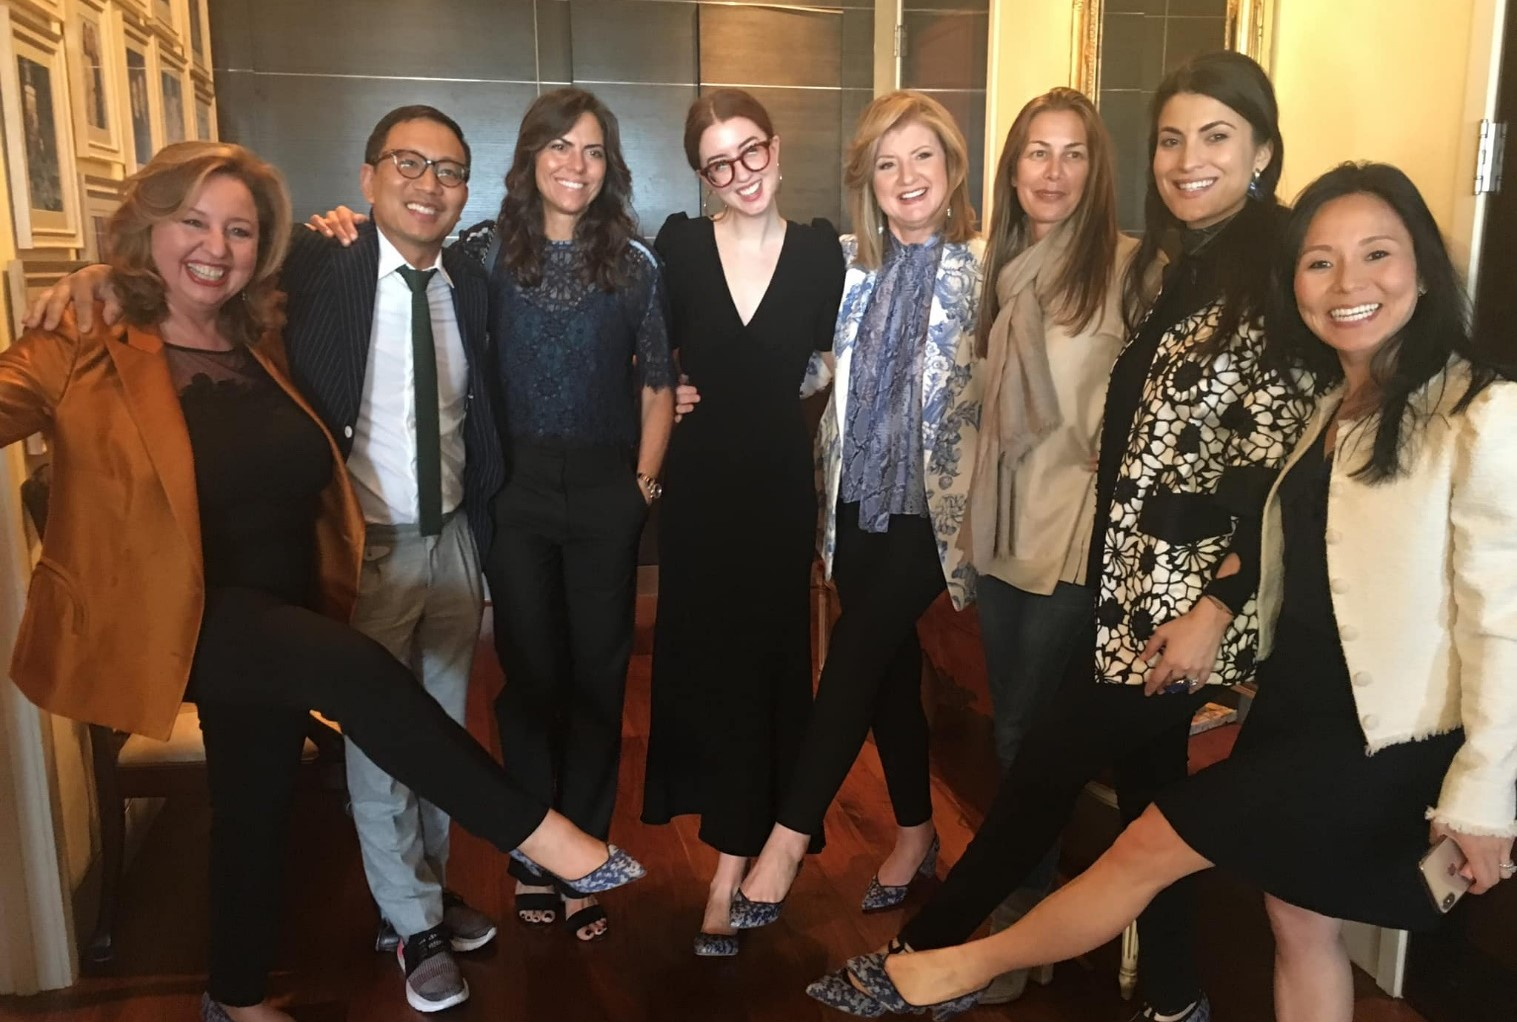 Arianna Huffington and the team at Thrive Global